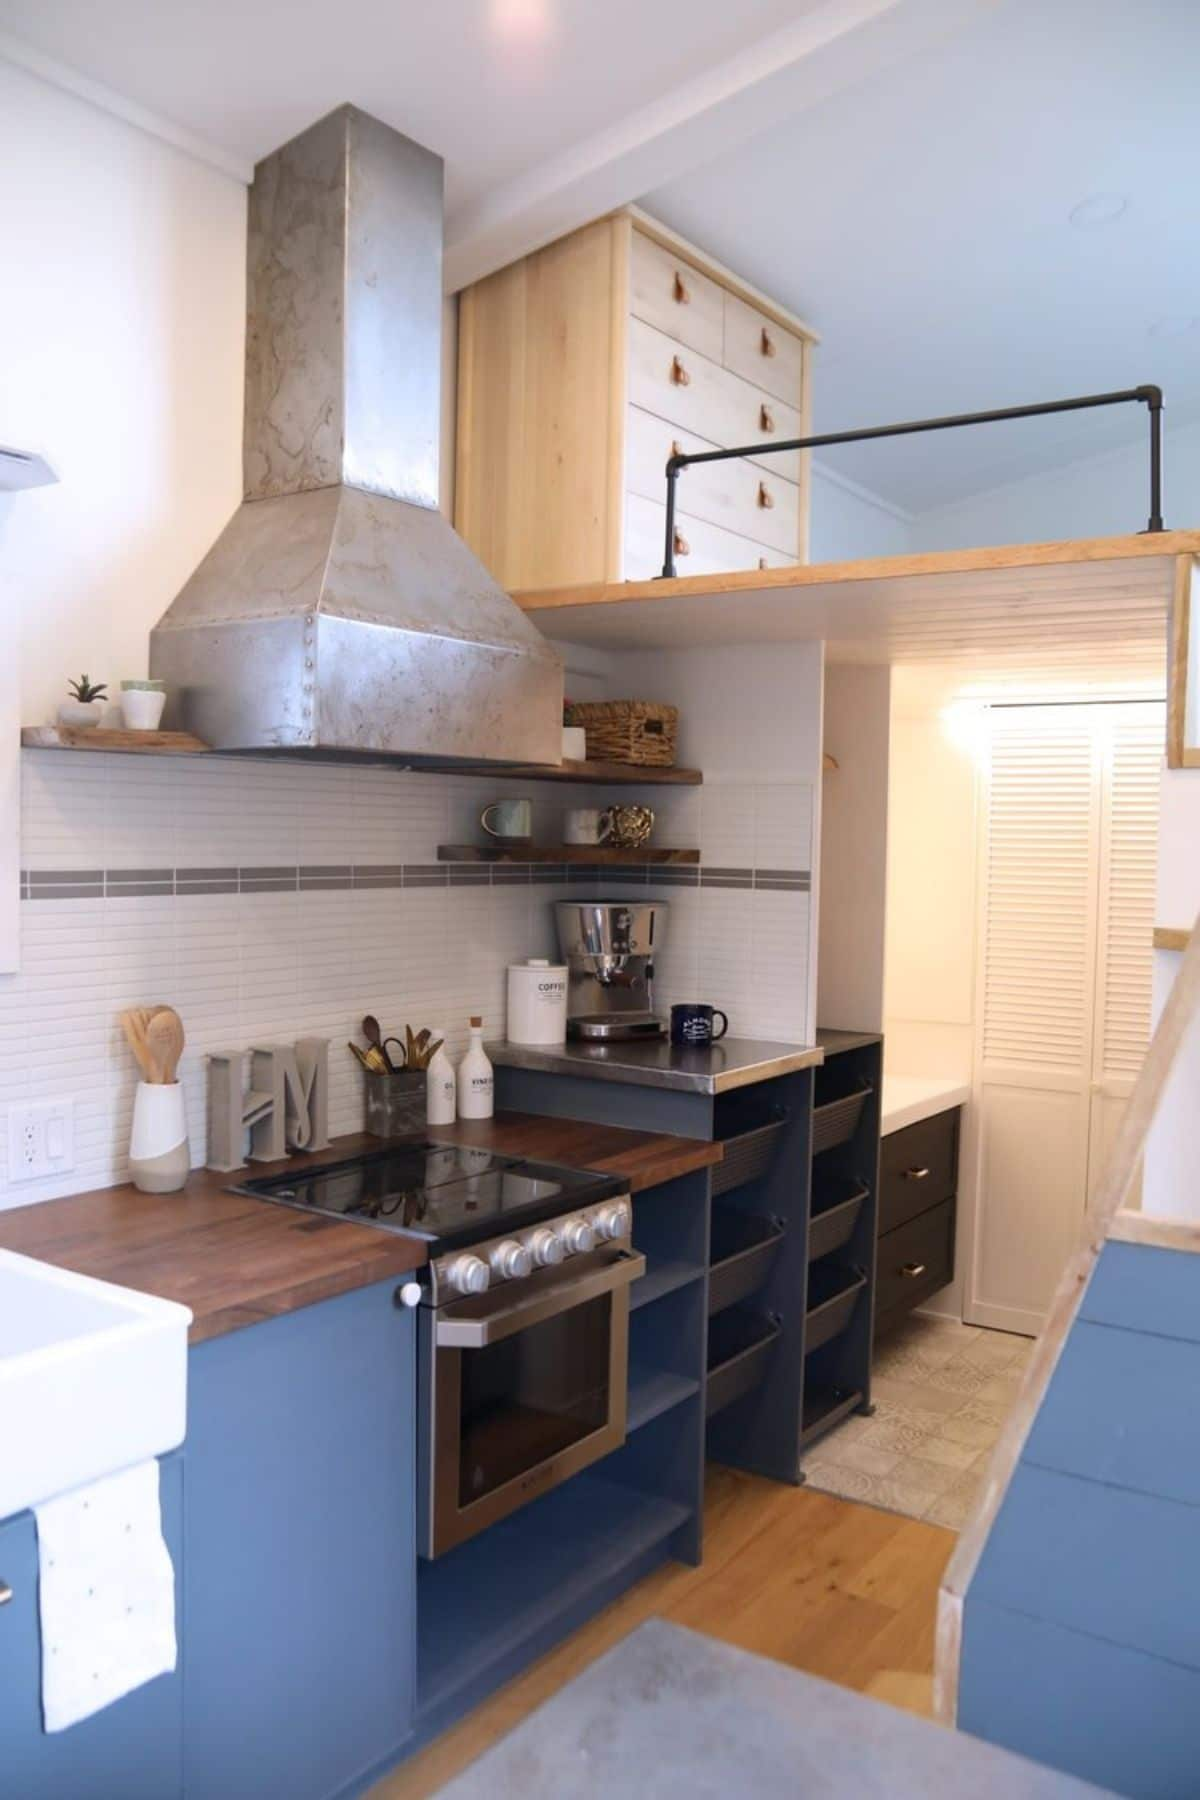 light blue cabinets with butcher block tops in kitchen with white walls